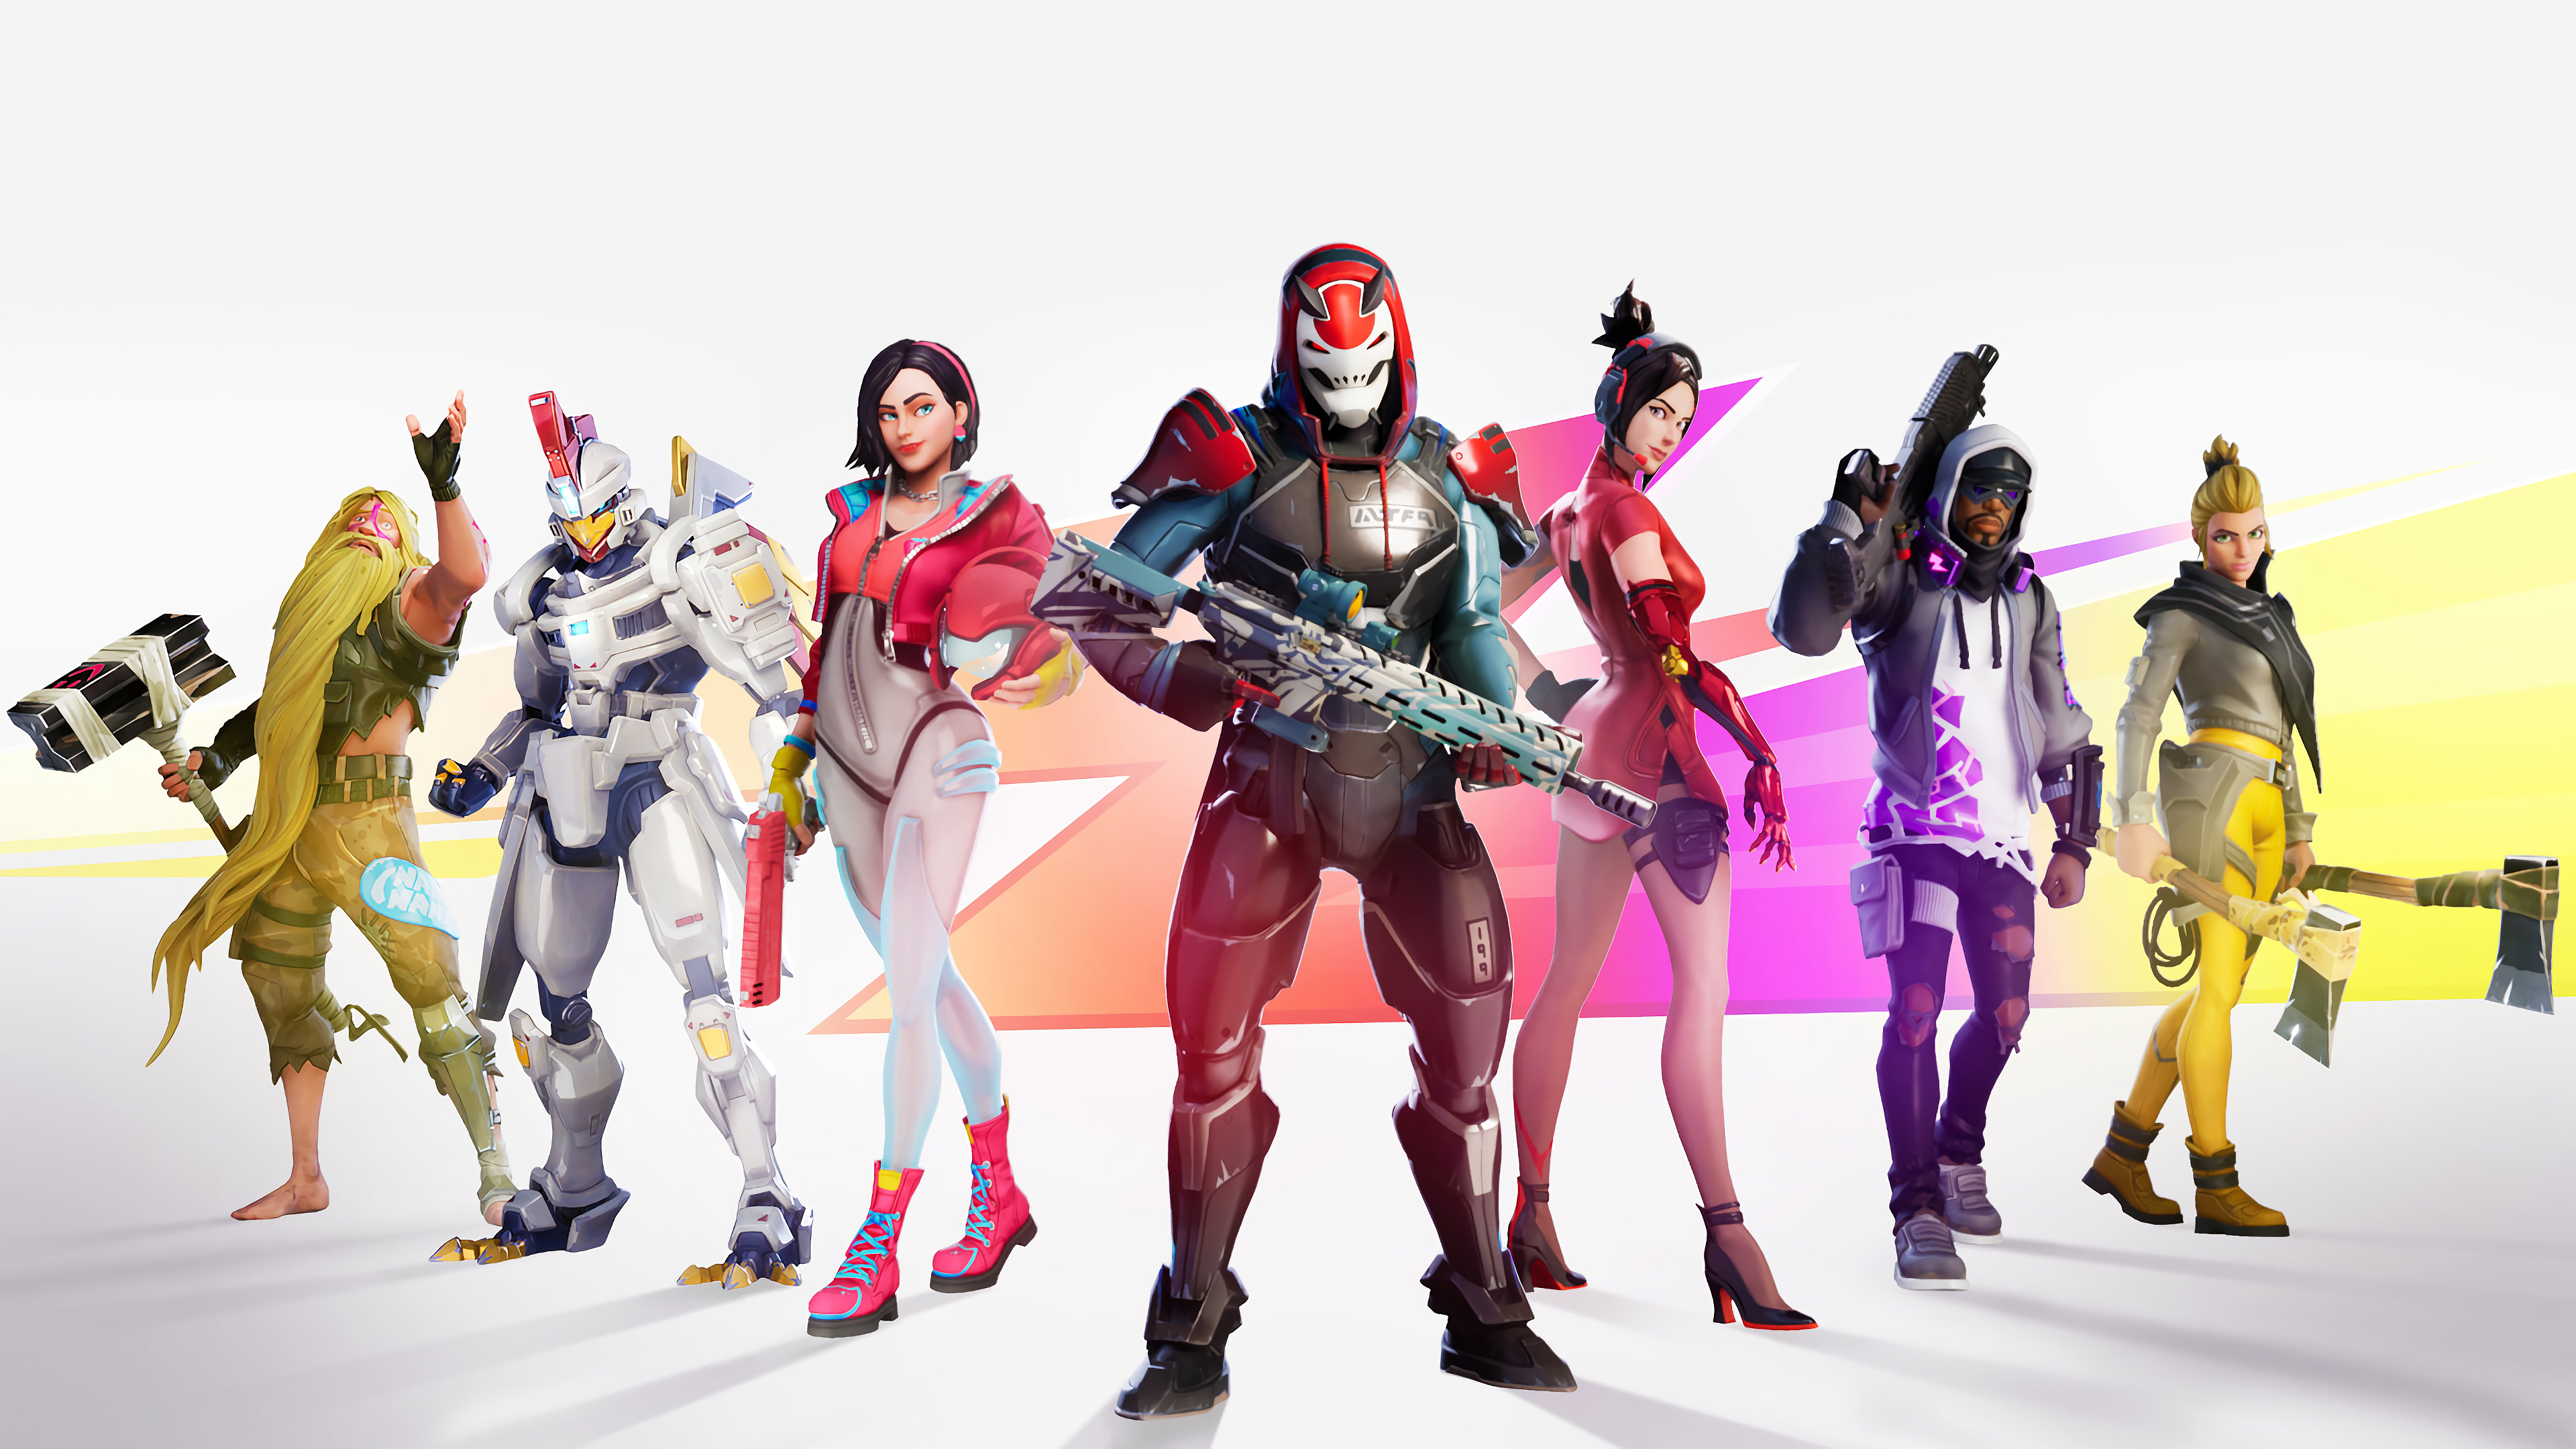 Fortnite Season 9 Battle Pass Skins Outfits 4k Wallpaper 222